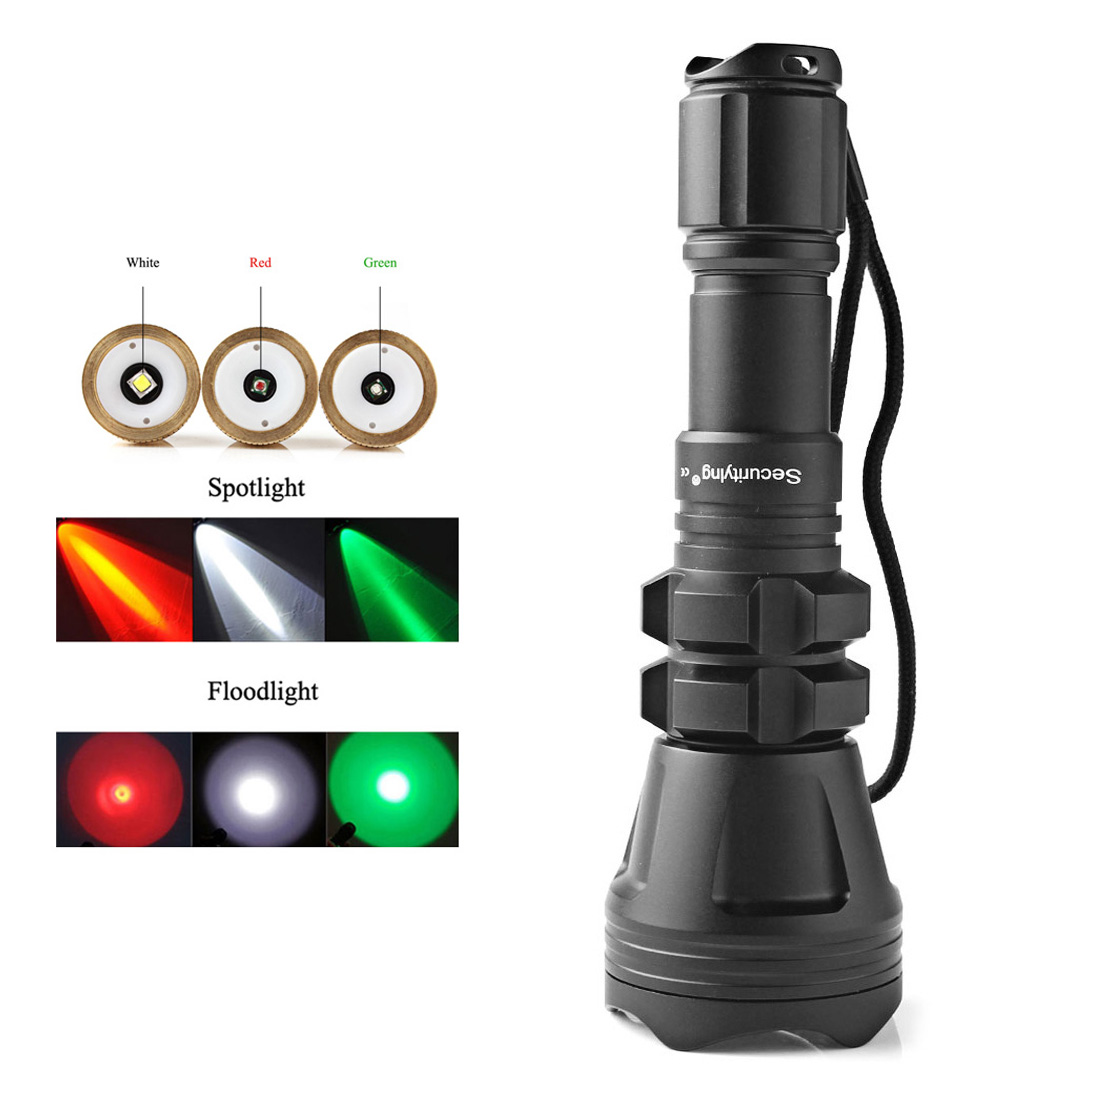 SecurityIng Waterproof Hunting Flashlight XM-L2 U4 White Led 900LM 5 Modes Zoomable Torch with Remote Pressure Switch 3800 lumens cree xm l t6 5 modes led tactical flashlight torch waterproof lamp torch hunting flash light lantern for camping z93